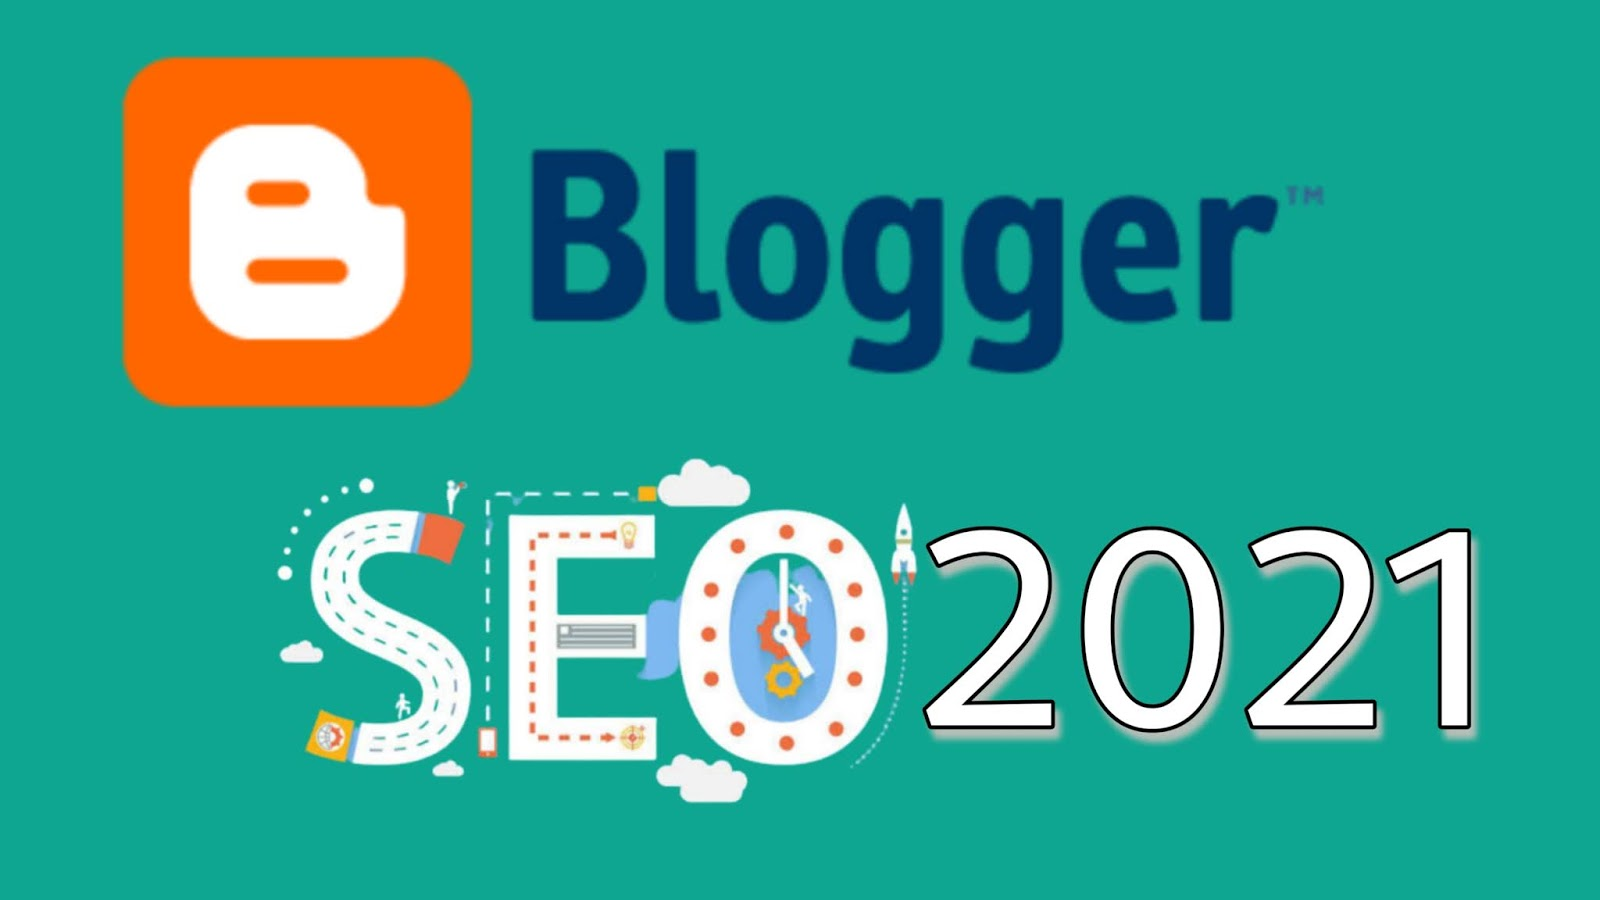 How to do blogger site SEO,Blogger SEO tools, Best free blogging platform, Blogger settings, Best blog for SEO, SEO blogs, ShoutMeLoud Blogger template, How to rank blog on Google, SEO blog template, ShoutMeLoud BlogSpot, SEO blog writing, SEO, How to improve Google search ranking, How to rank your article in Google, Ubersuggest, How to rank first on Google, Google Keyword Planner, How to structure a blog post, How to structure your blog,